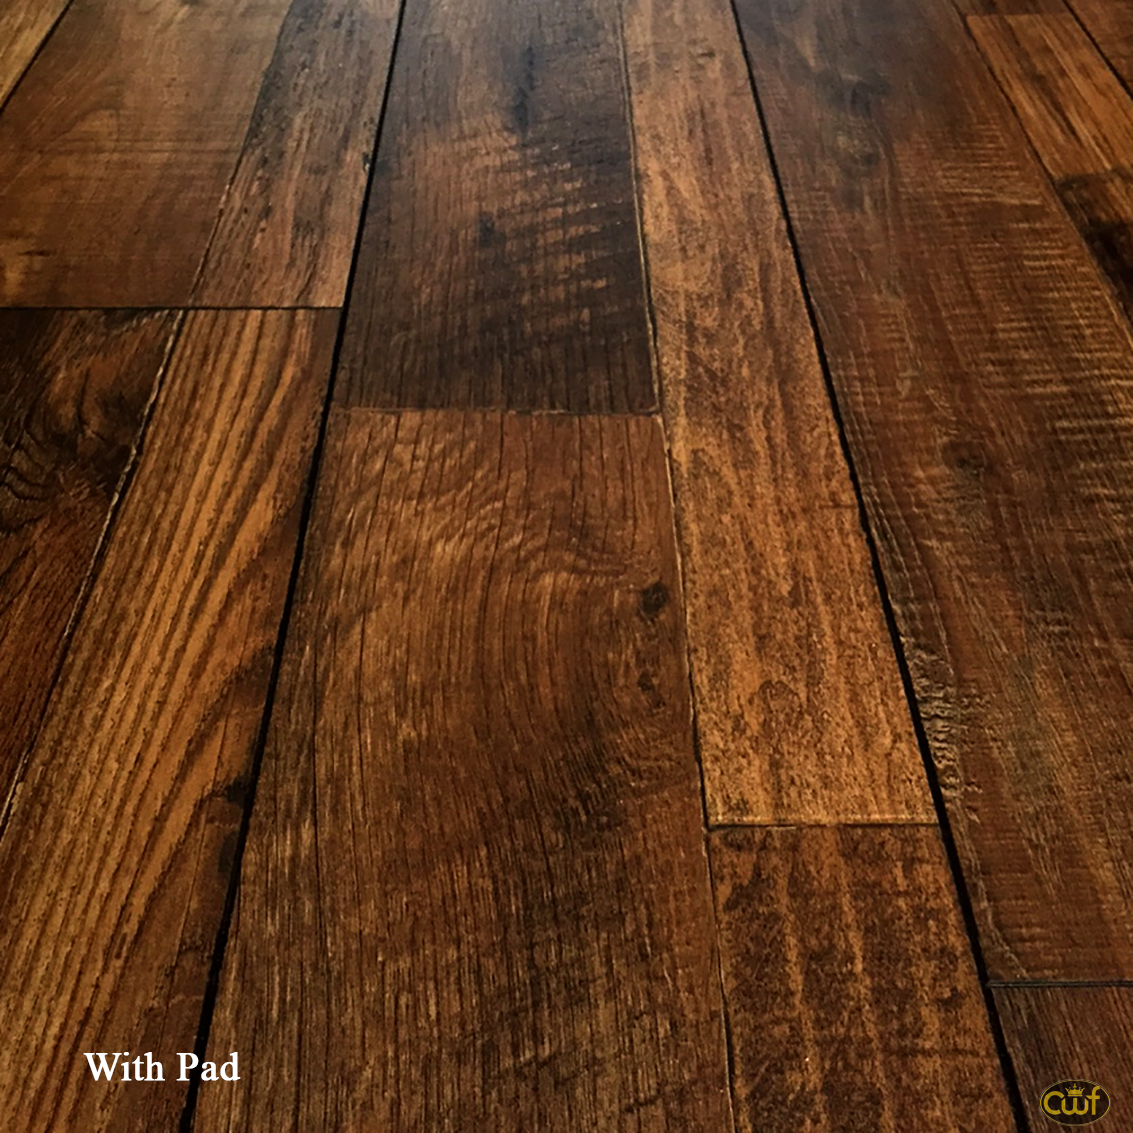 Red Oak With Pad 14 3 Mm Lifetime Residential Warranty